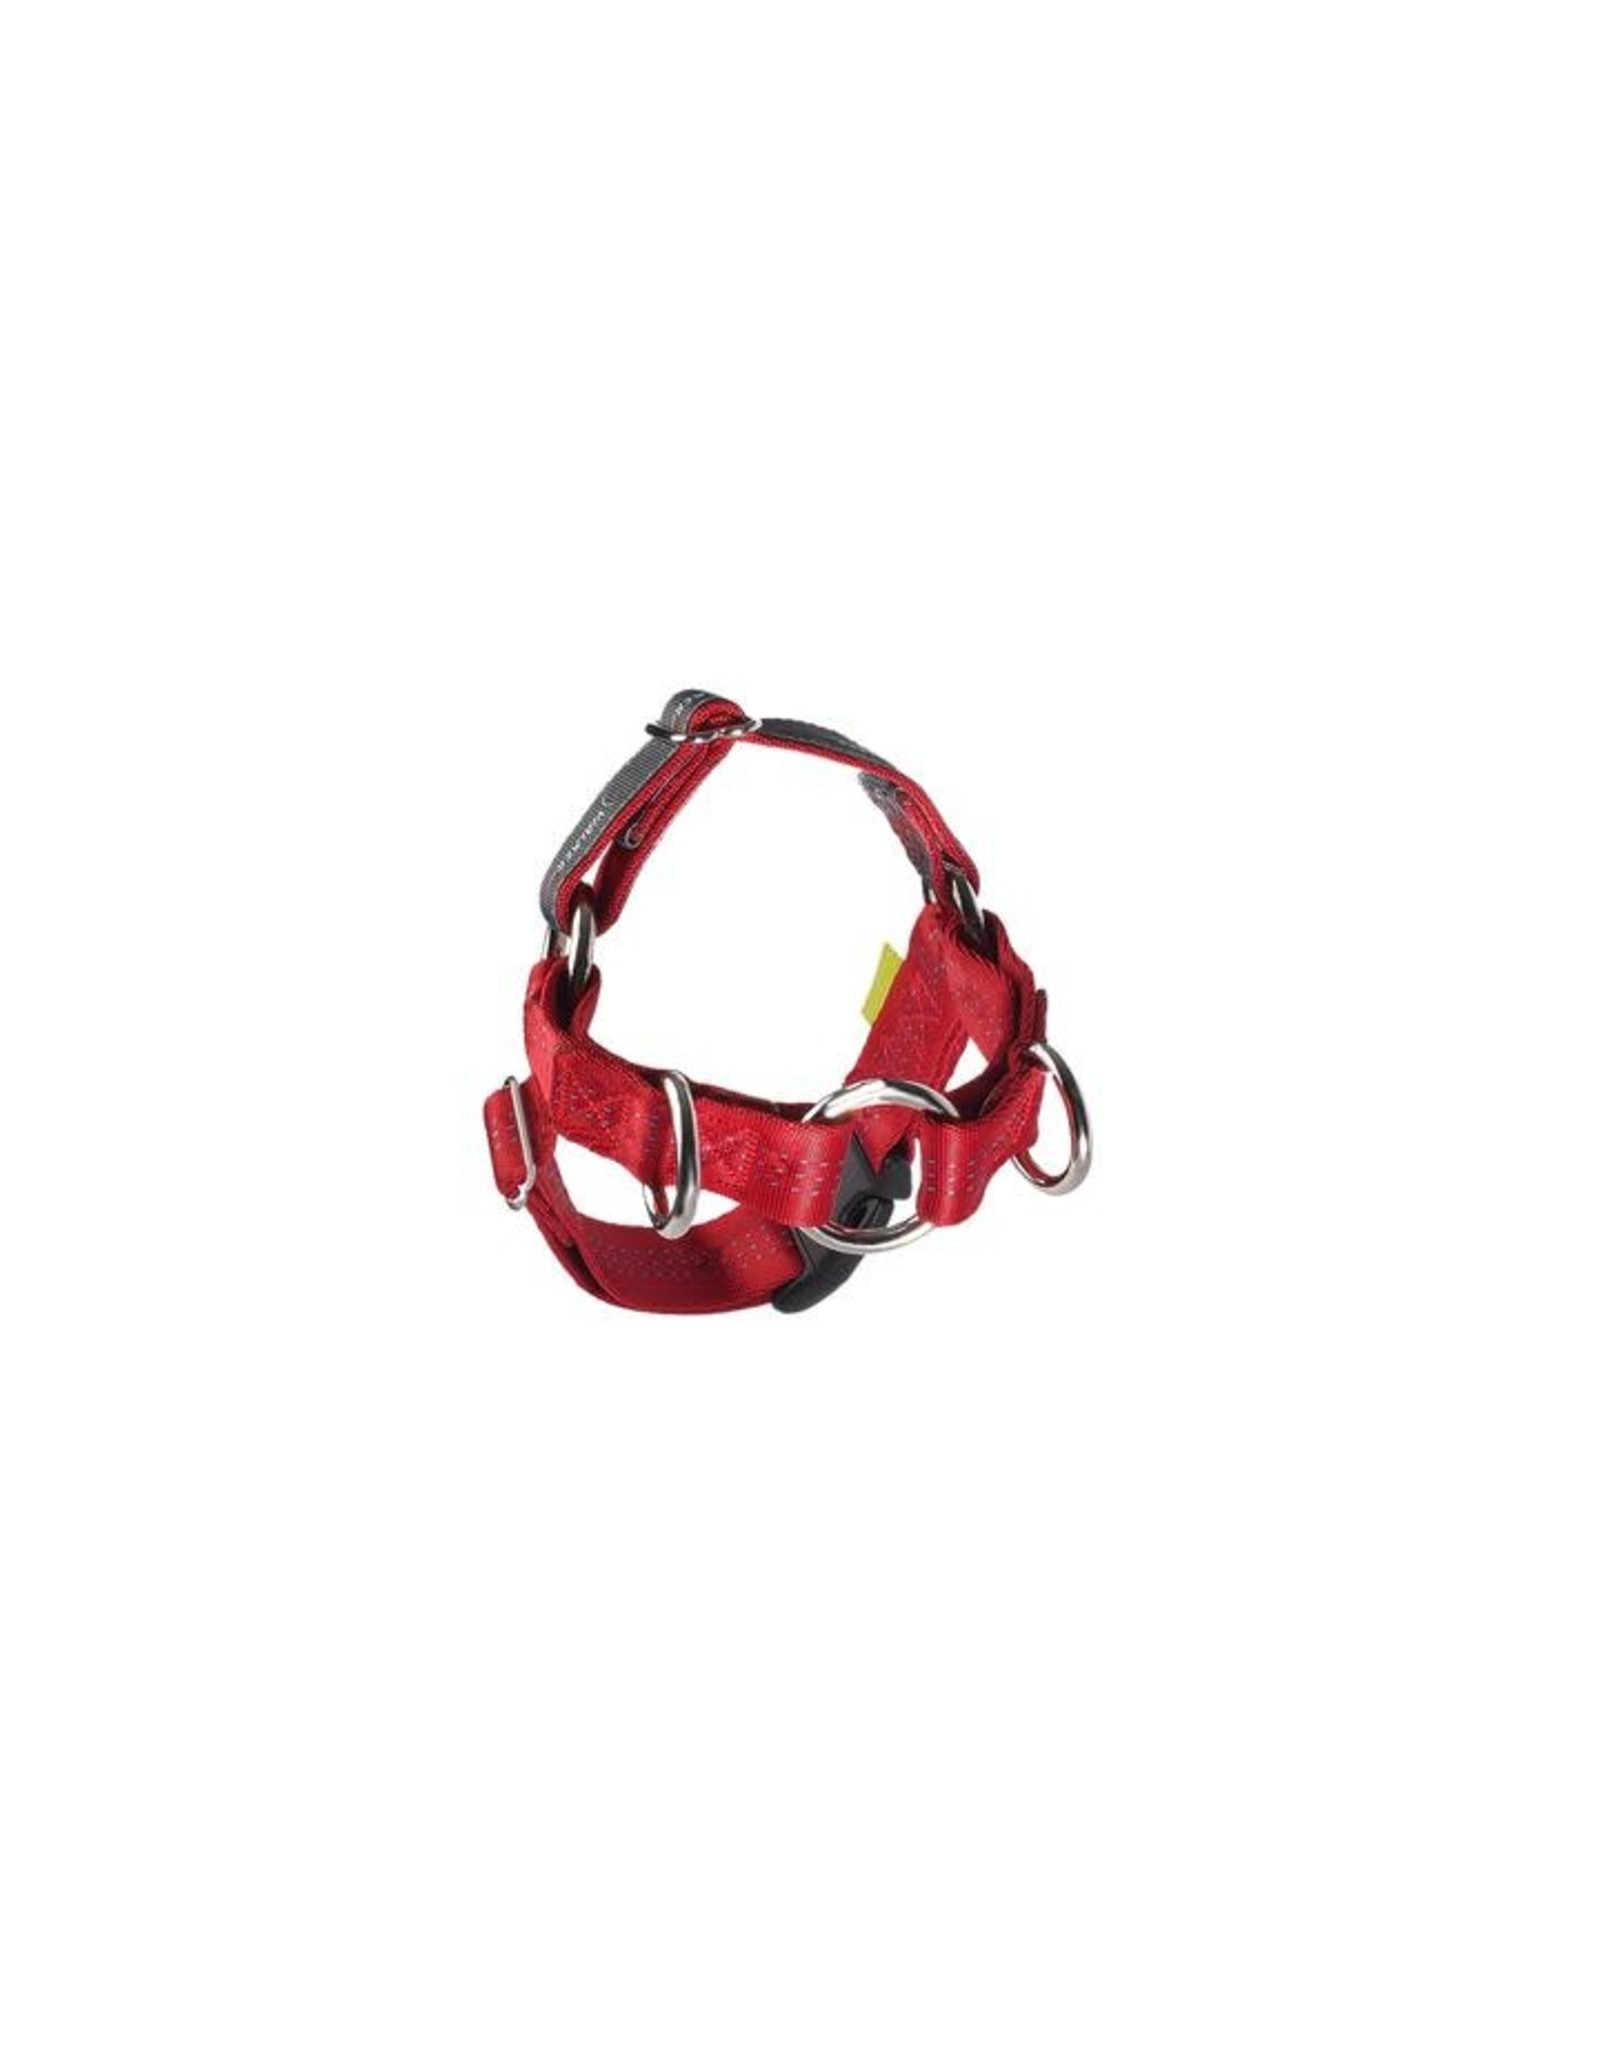 JWalker JWalker Harness - Red - XS